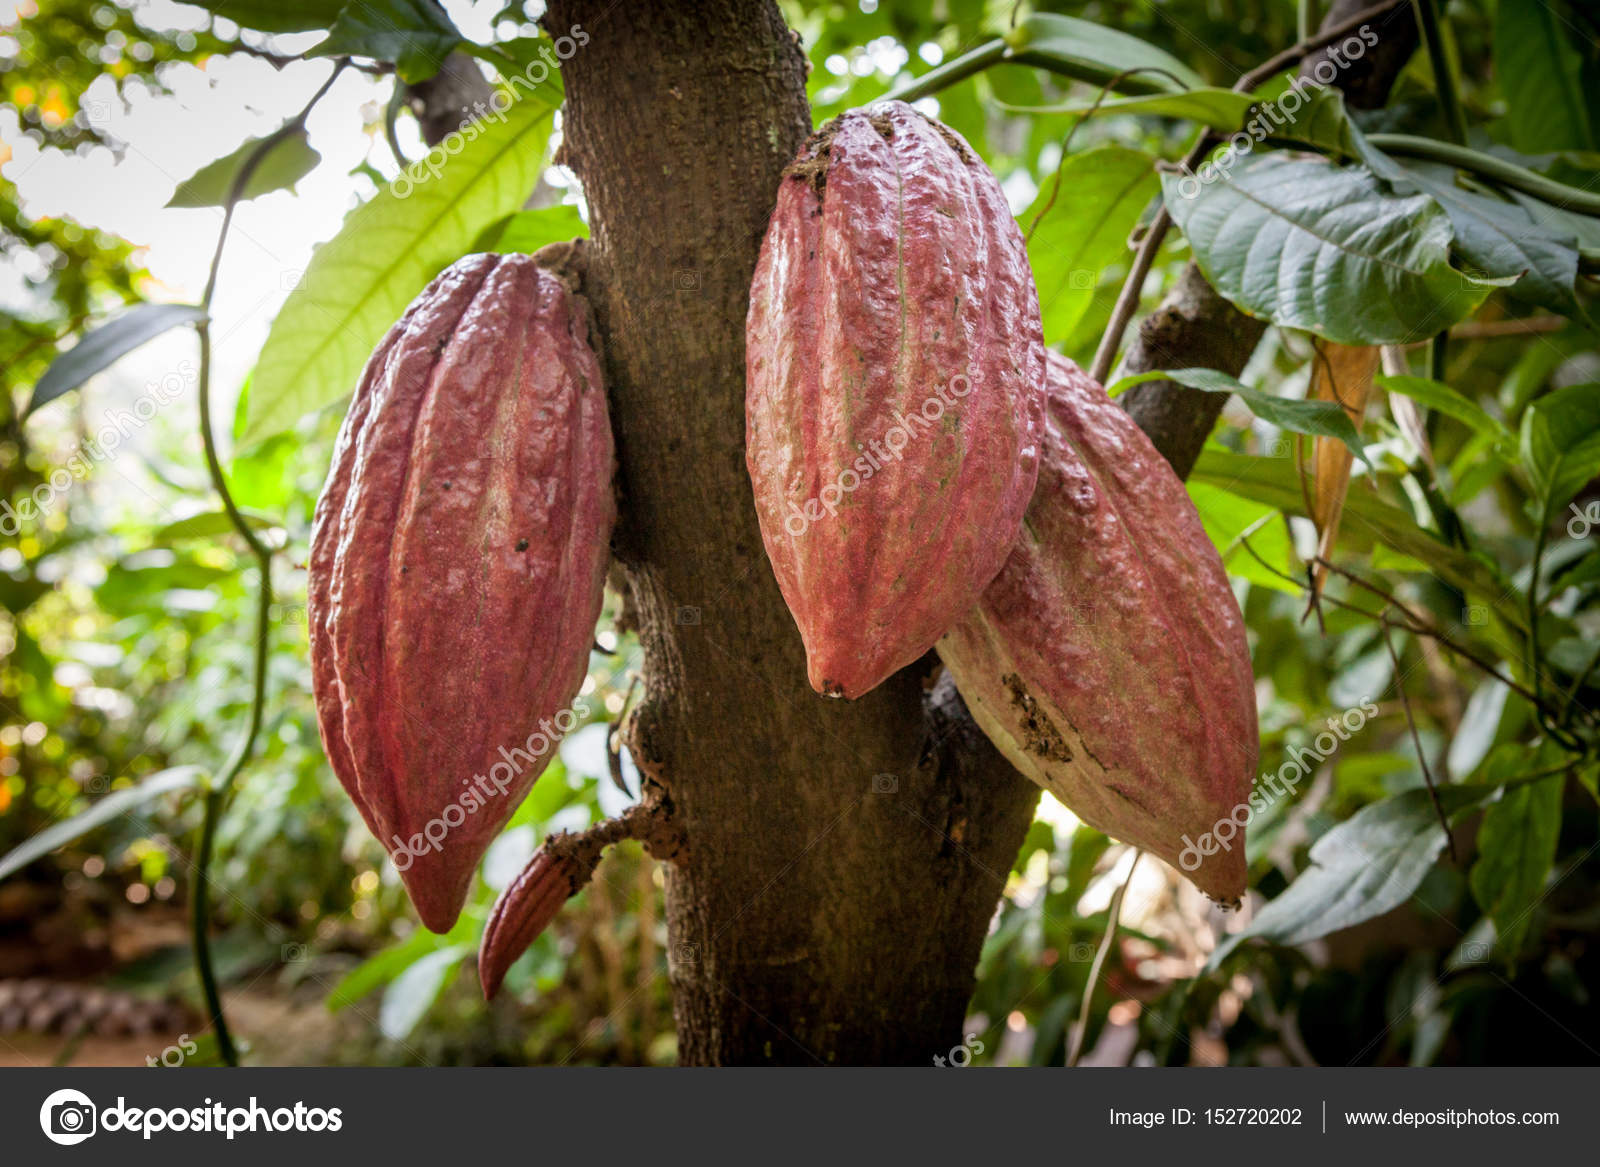 how to eat cocoa fruit